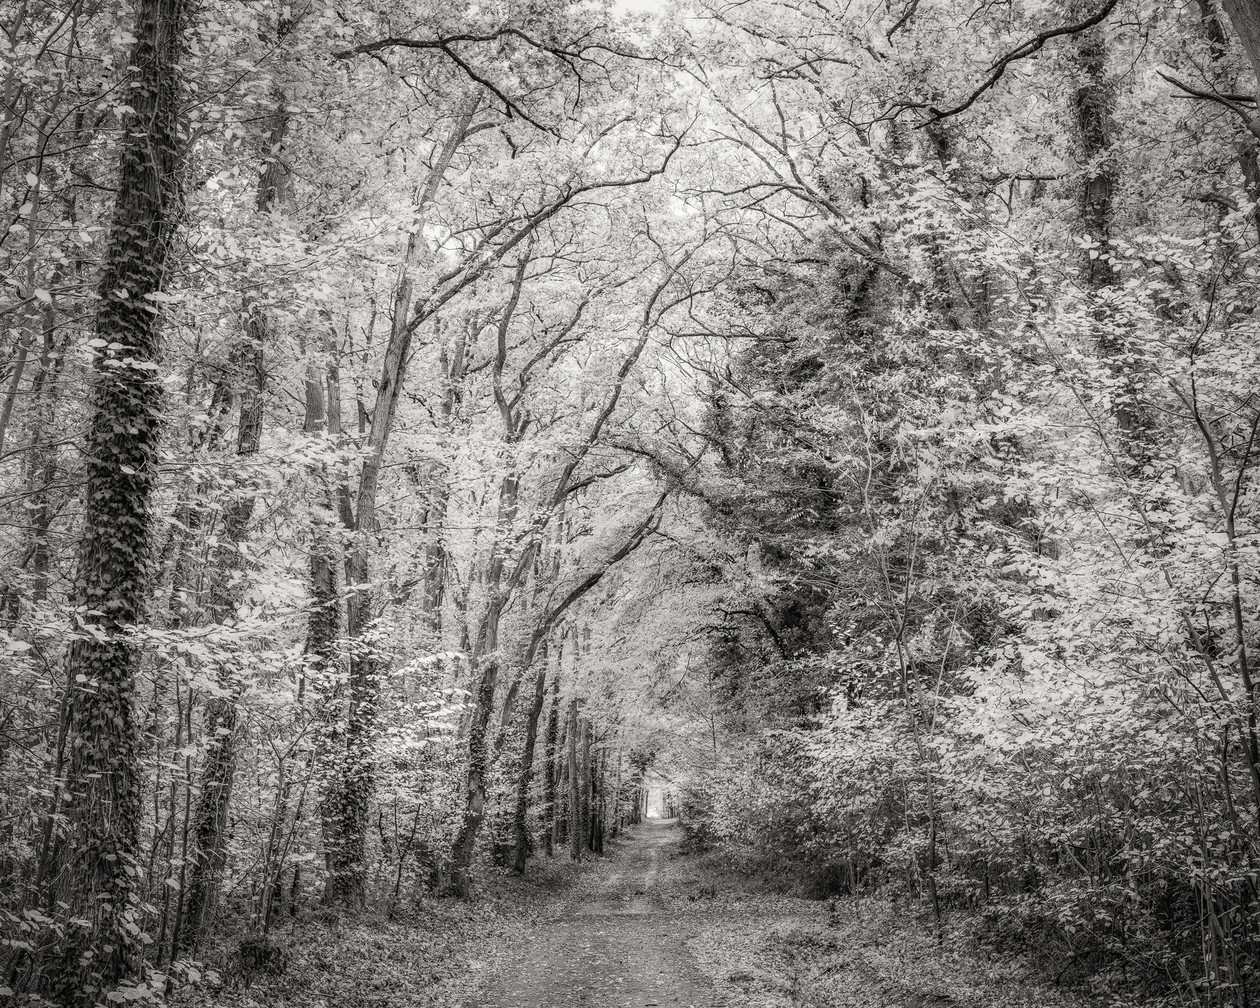 Forest Path, France (2018) by Jeffrey Conley